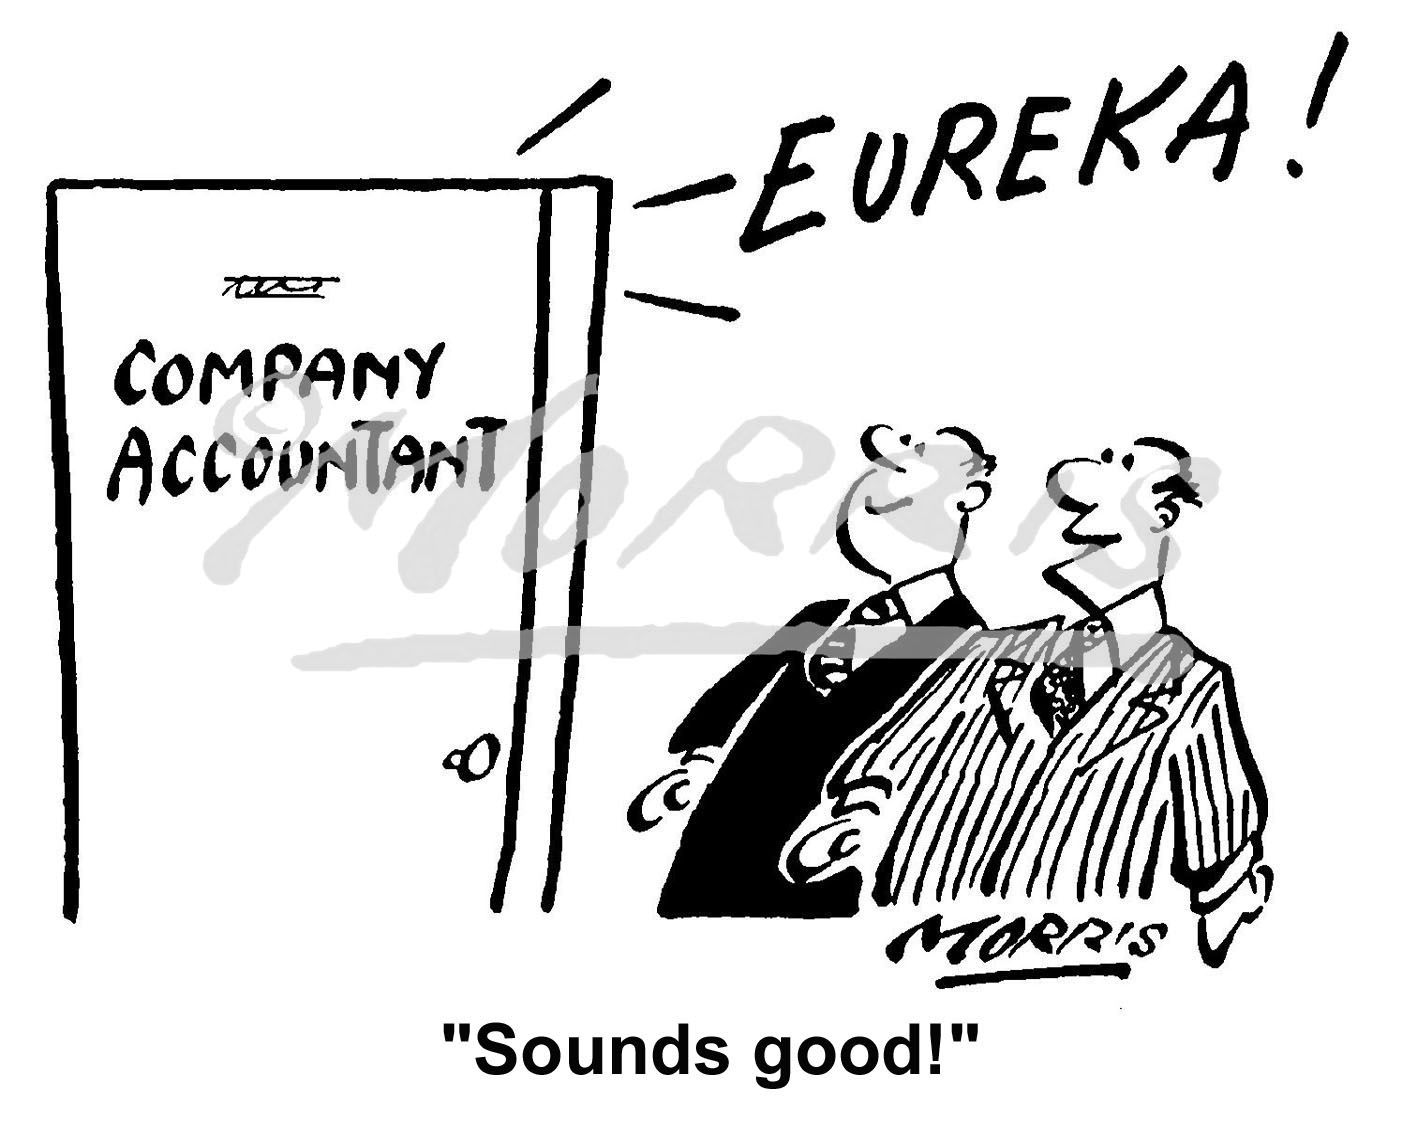 Accountant business cartoon – Ref: 2006bw